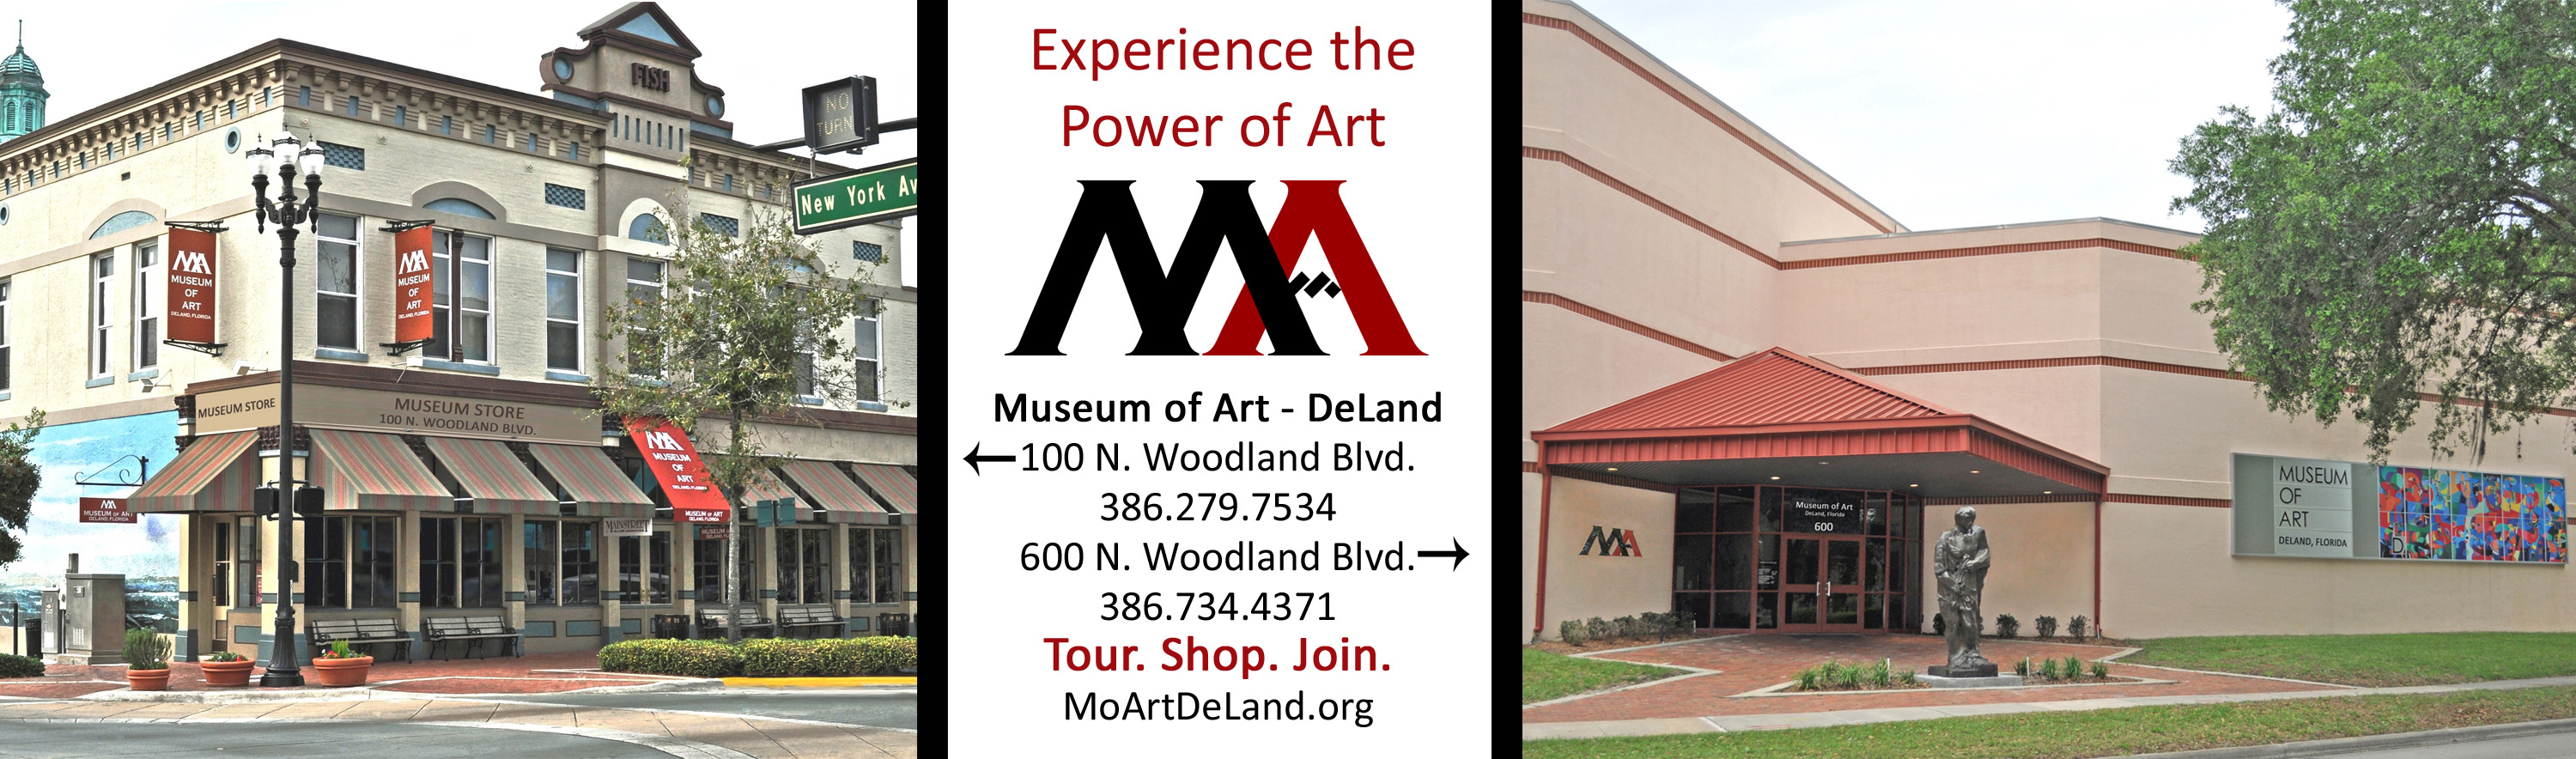 Museum_of_art_-_deland_100_n___600_n_woodland_blvd_ii